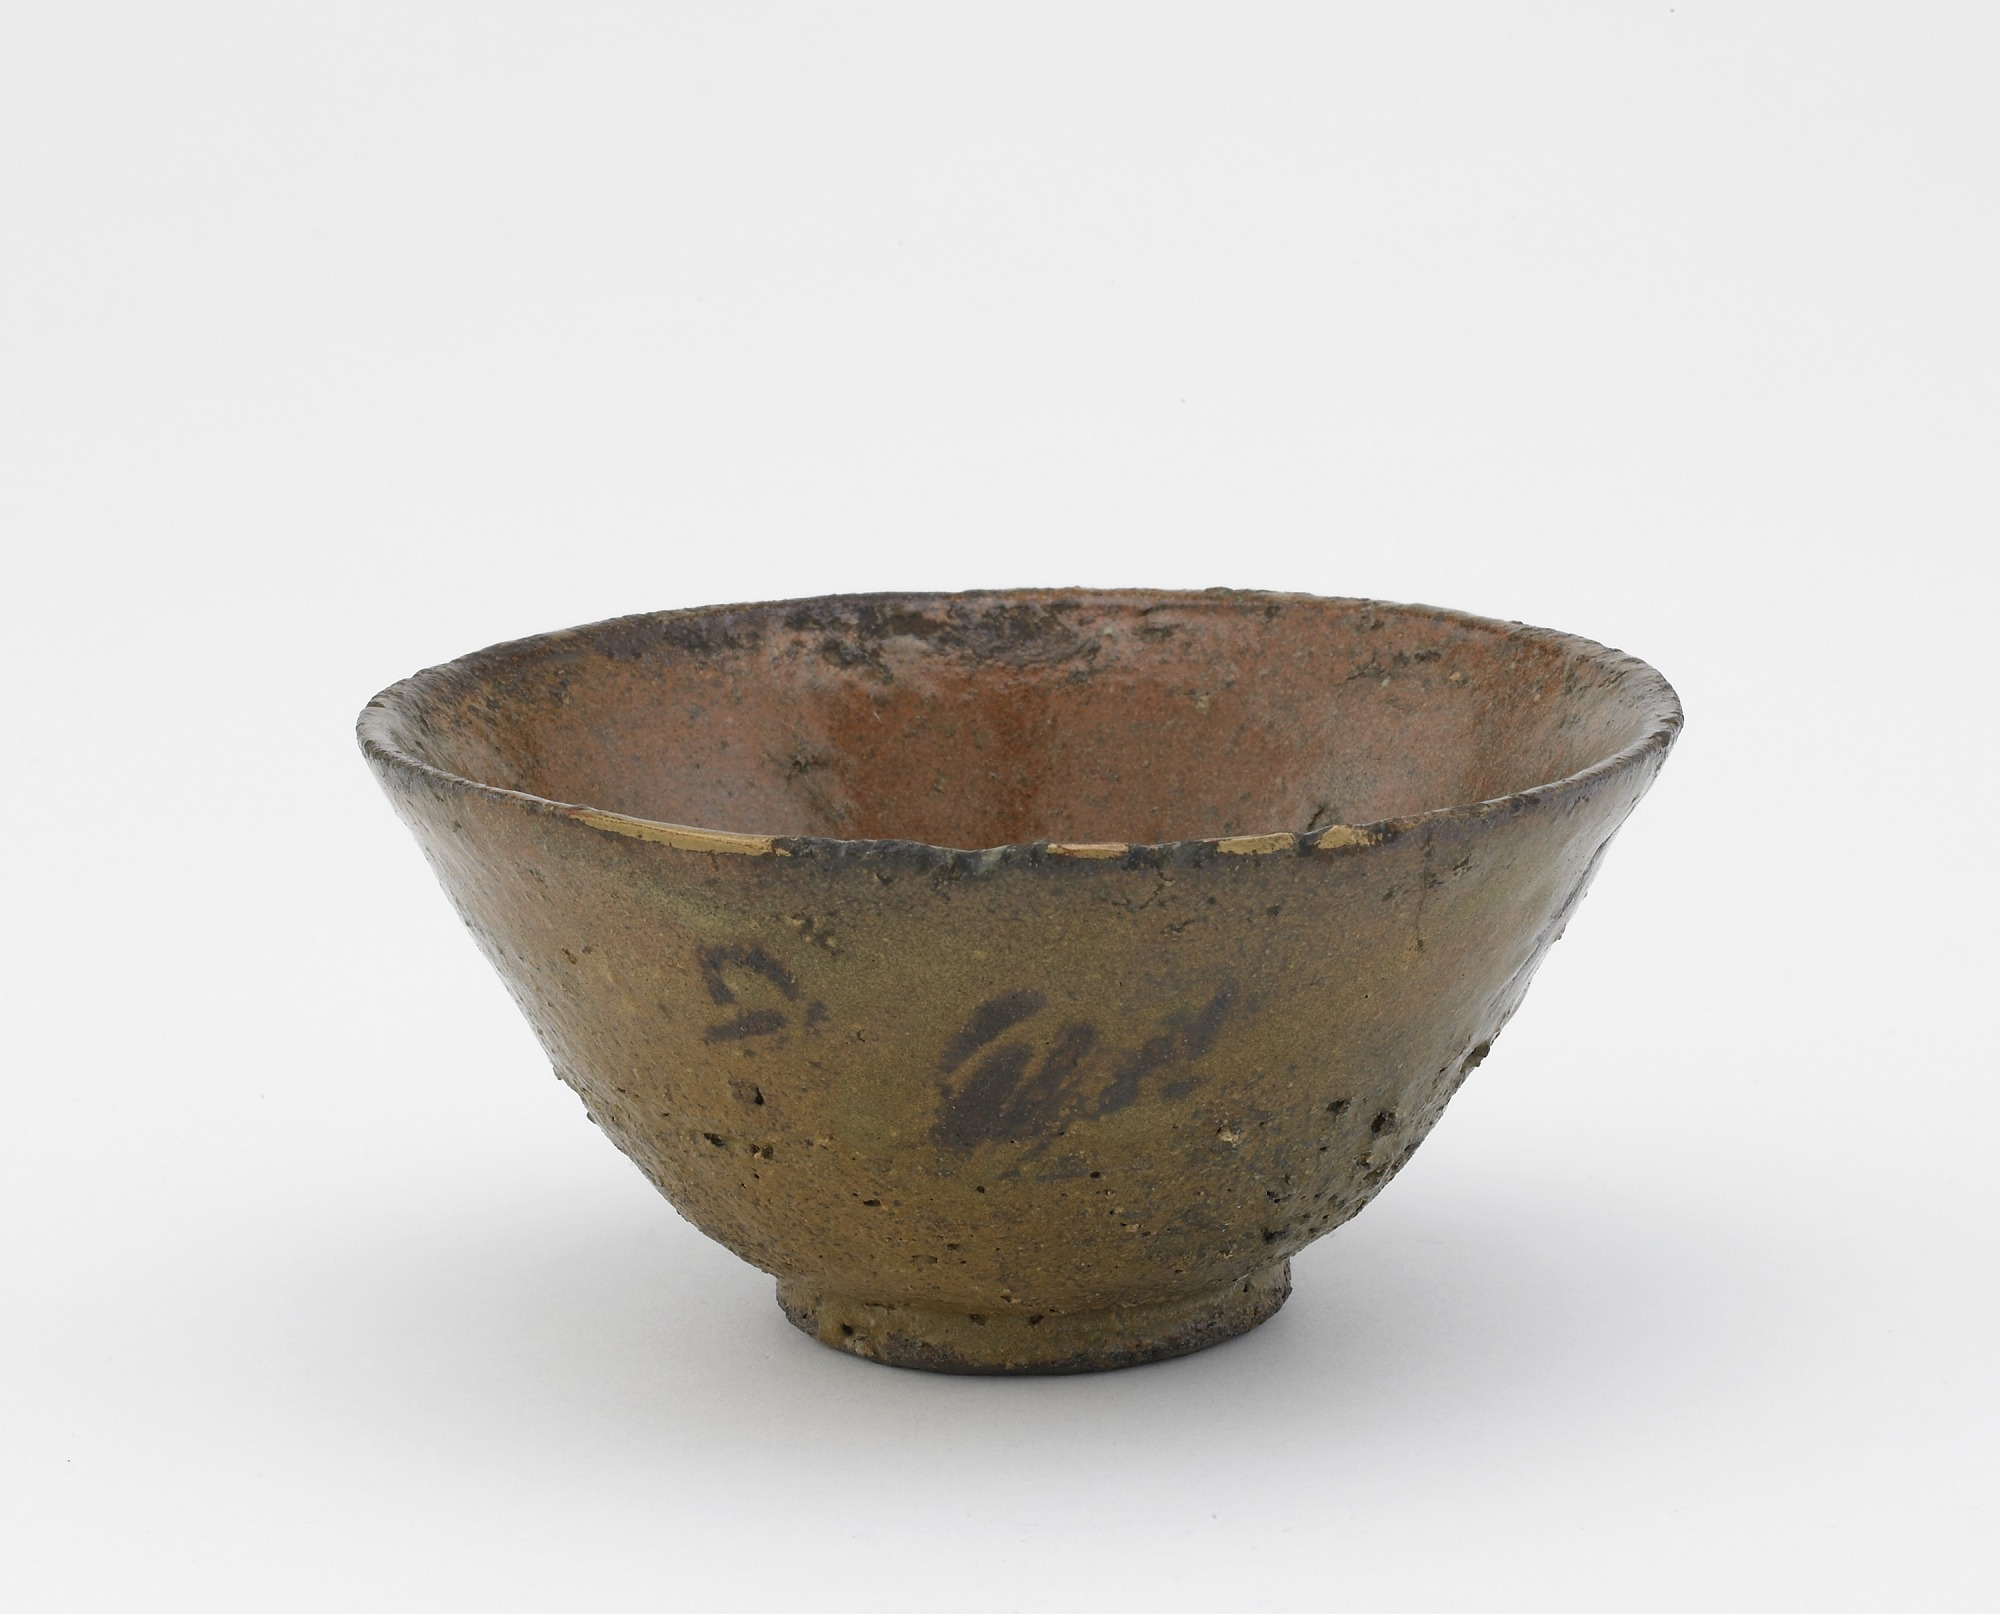 Tea bowl, Ki-Irabo type, 3/4 profile